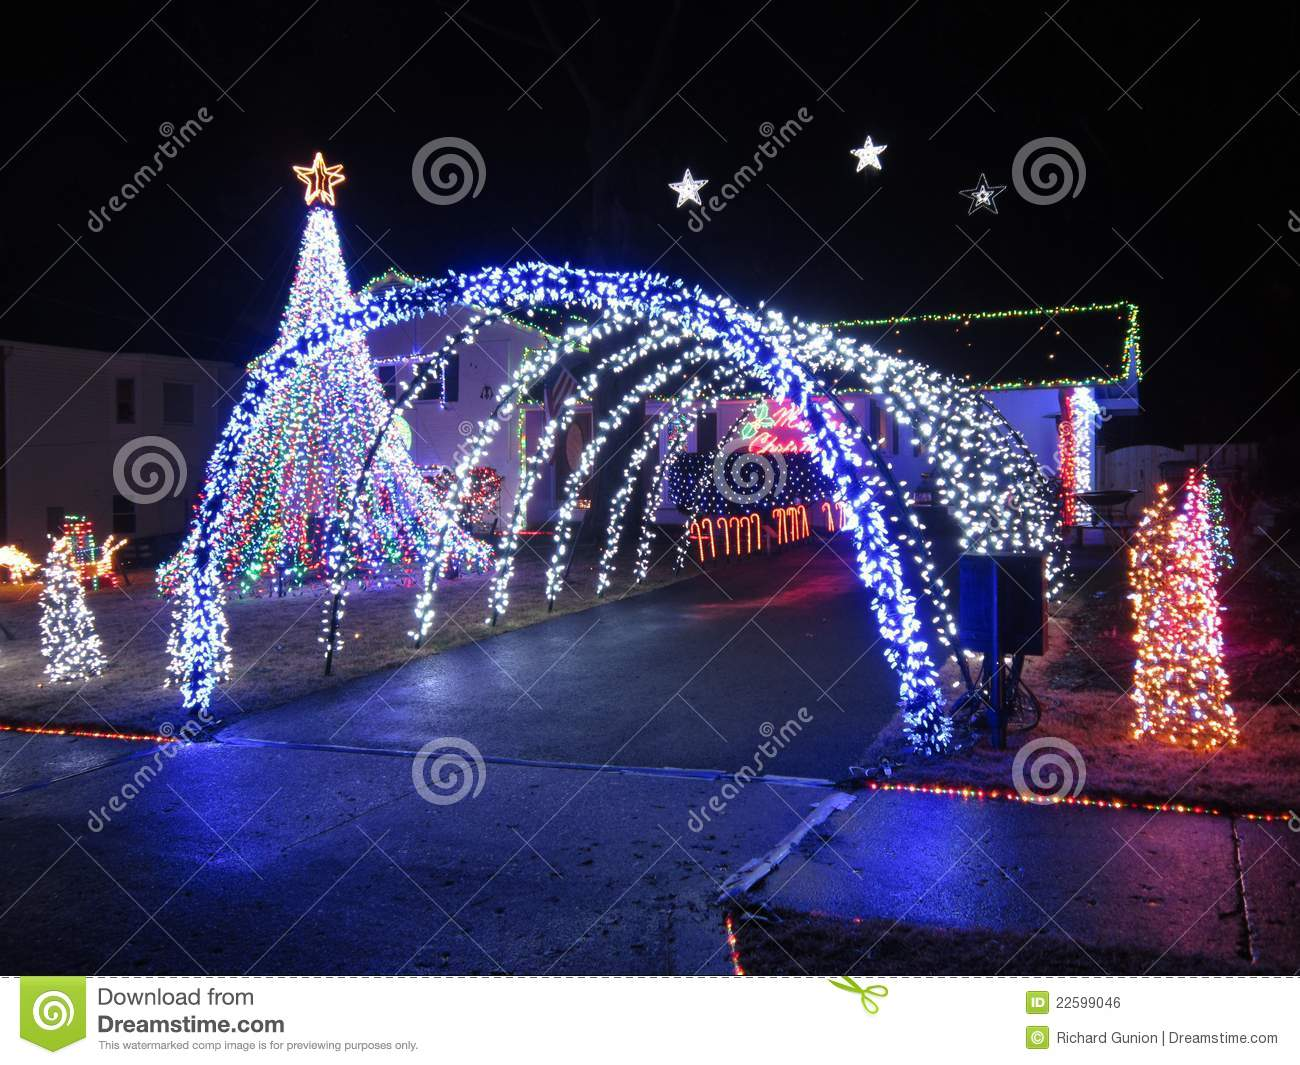 elaborate christmas decorations